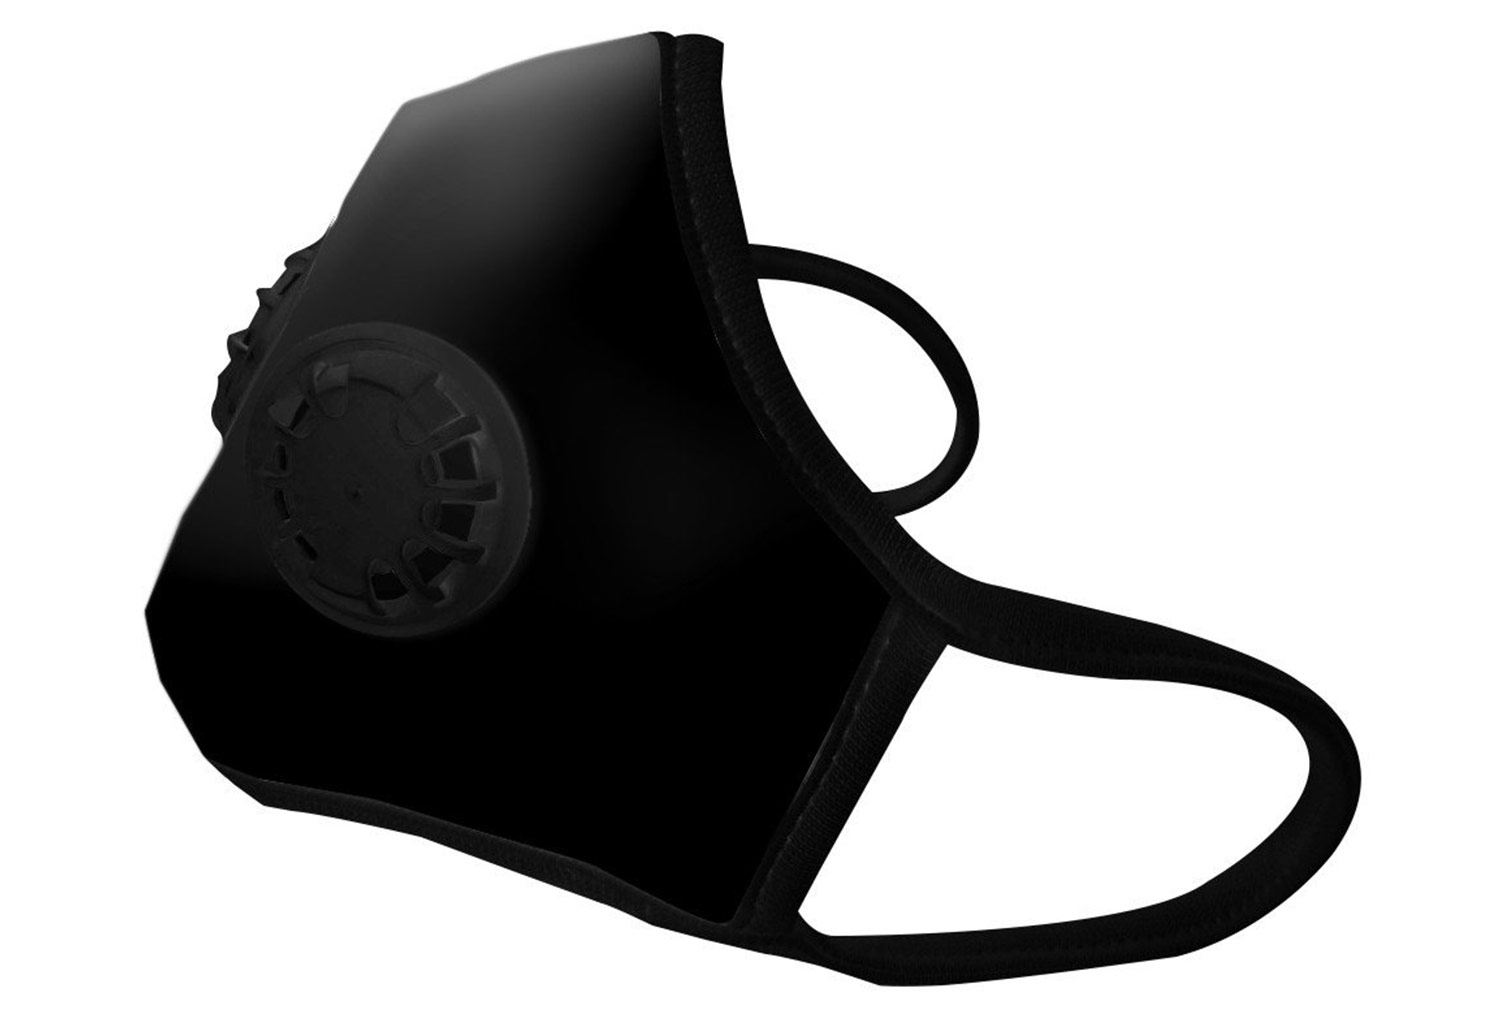 masque anti pollution vogmask n99cv2v noir 2 valves. Black Bedroom Furniture Sets. Home Design Ideas